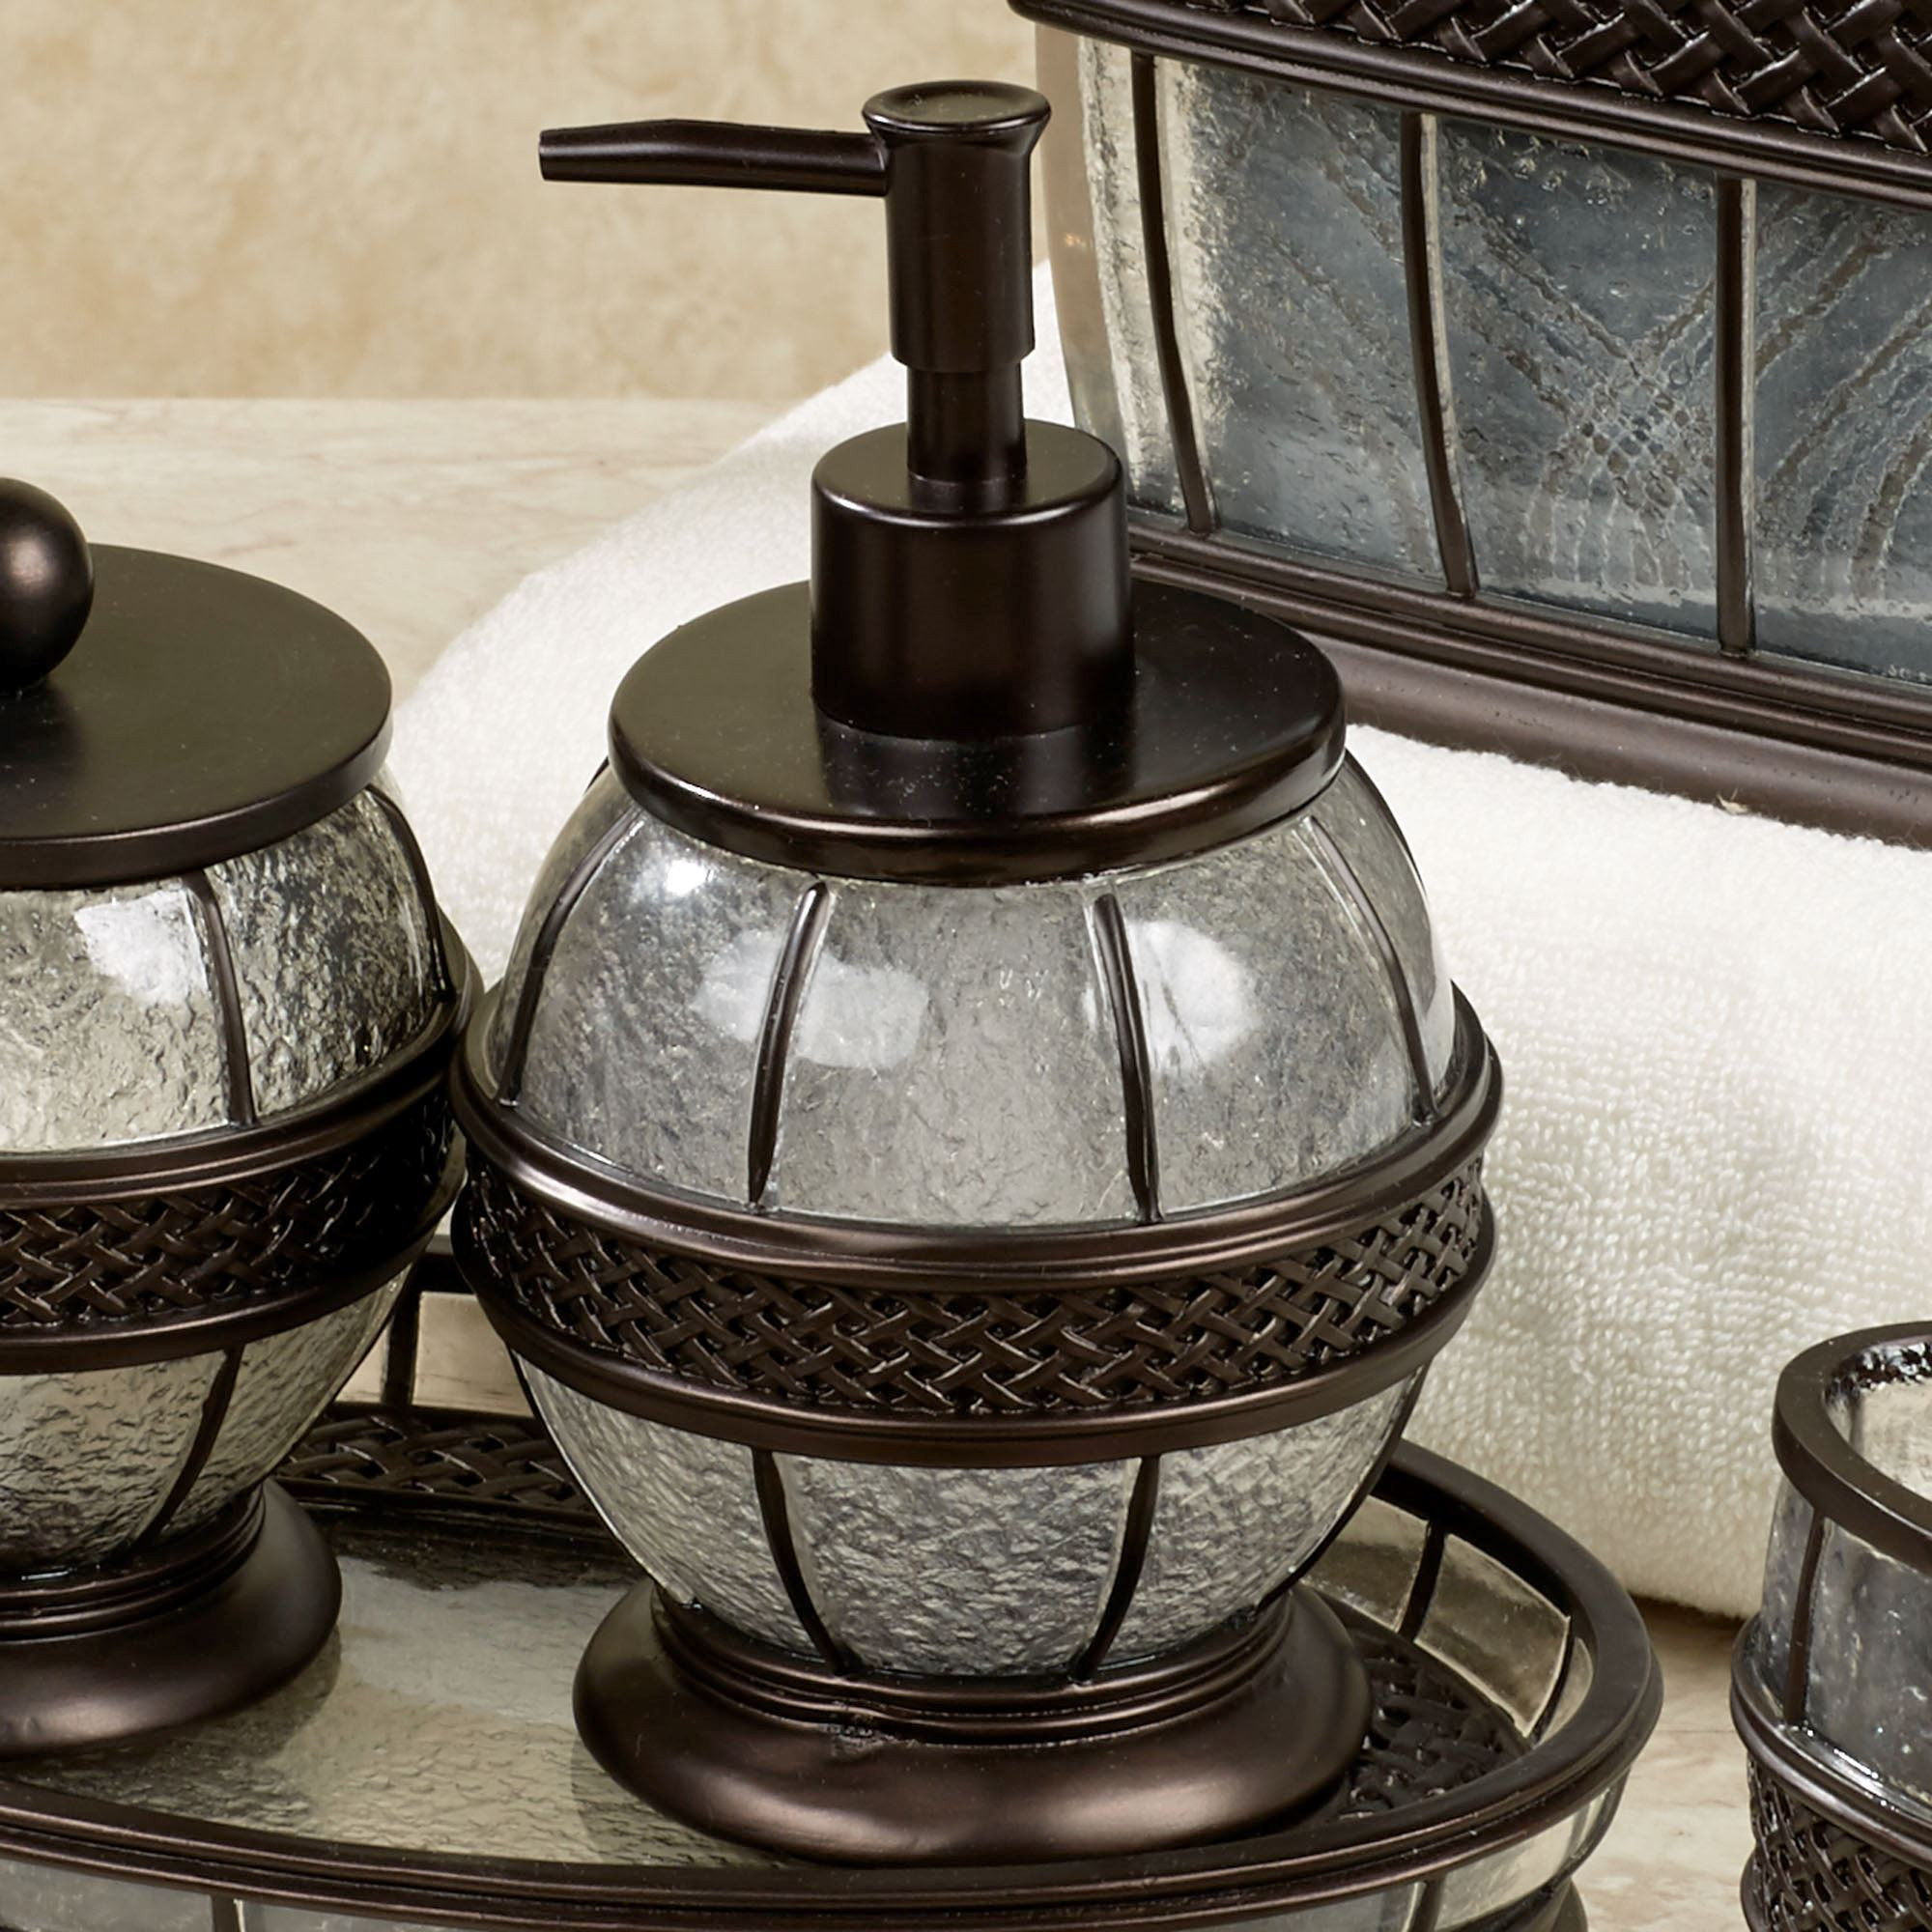 Best ideas about Bronze Bathroom Accessories . Save or Pin Ice Bath Accessories Now.